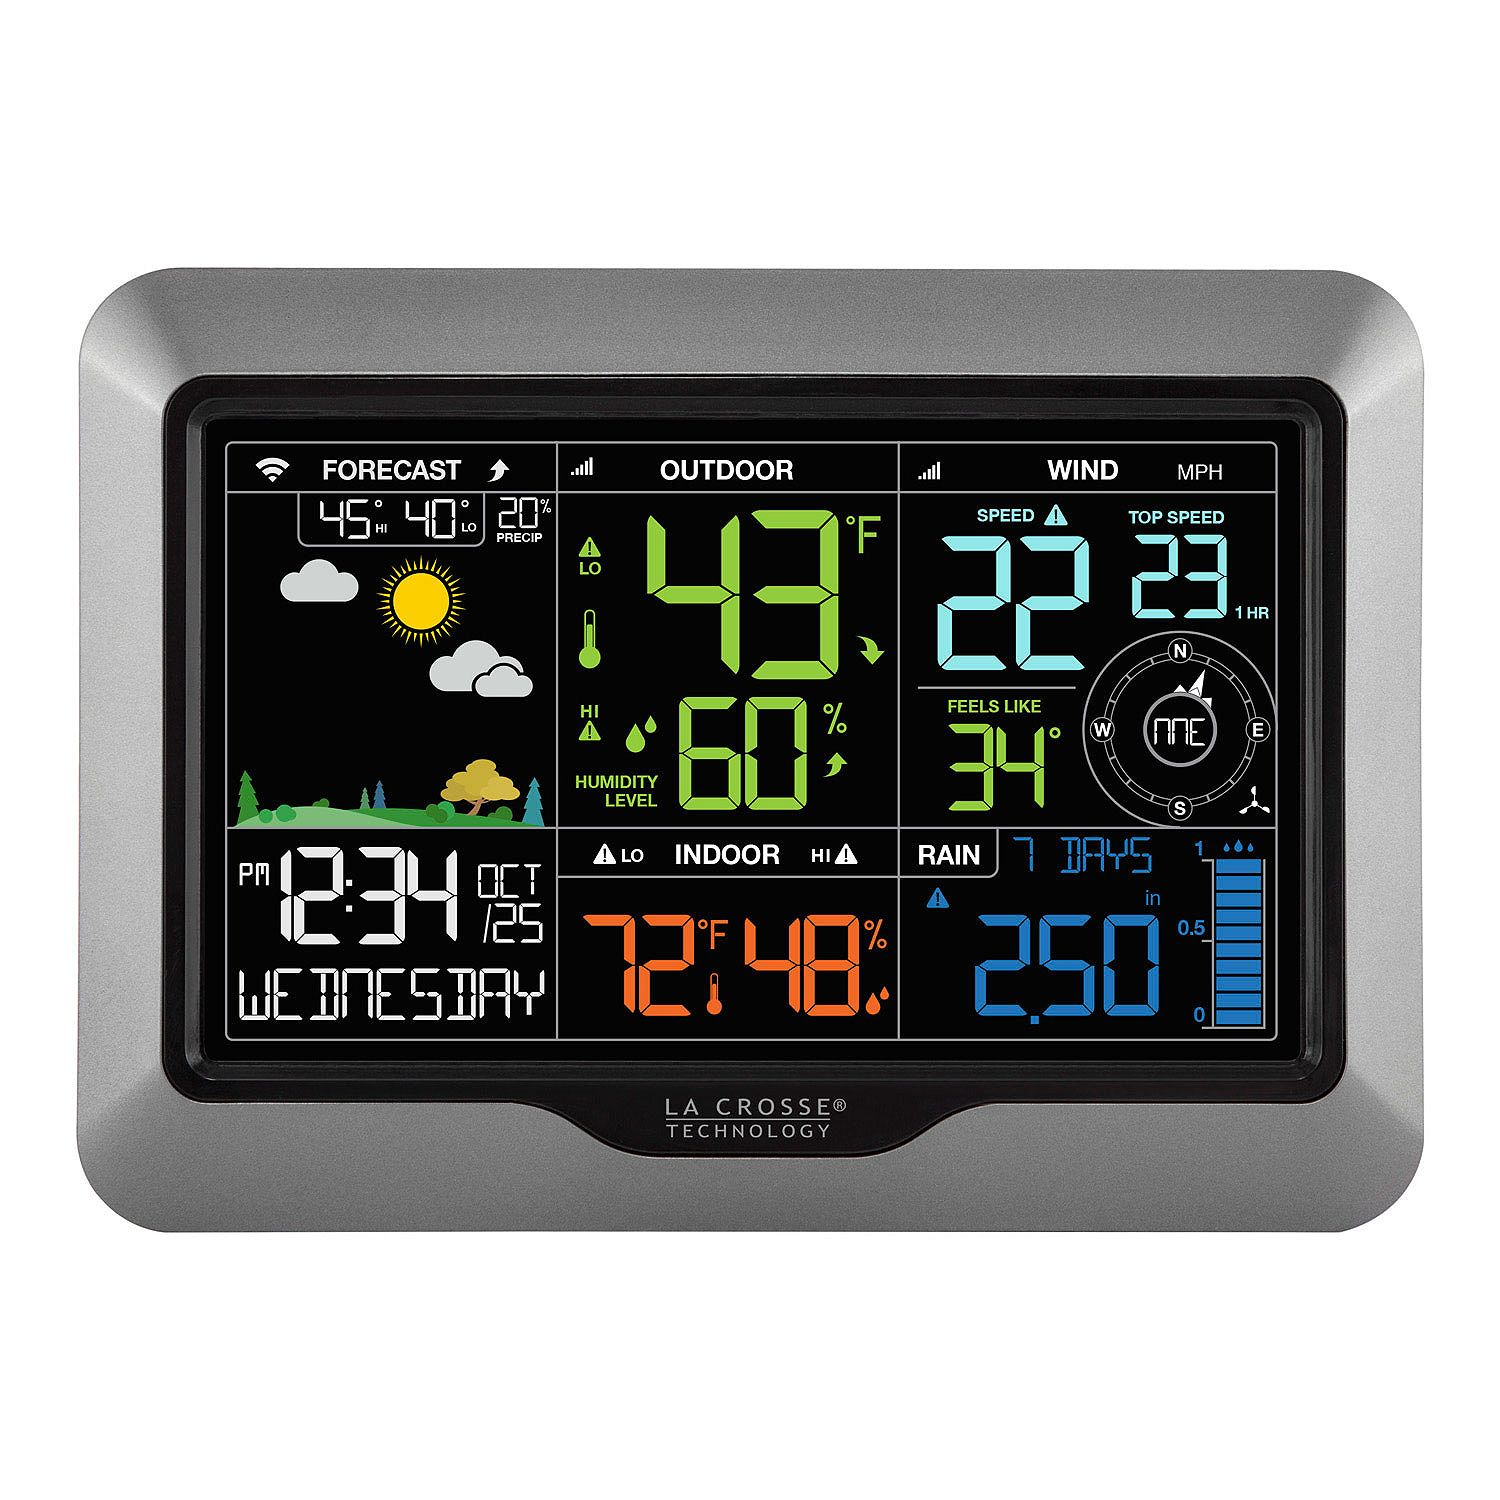 La Crosse Technology Professional Remote Monitoring Weather Station Model S84060 by Weather Stations